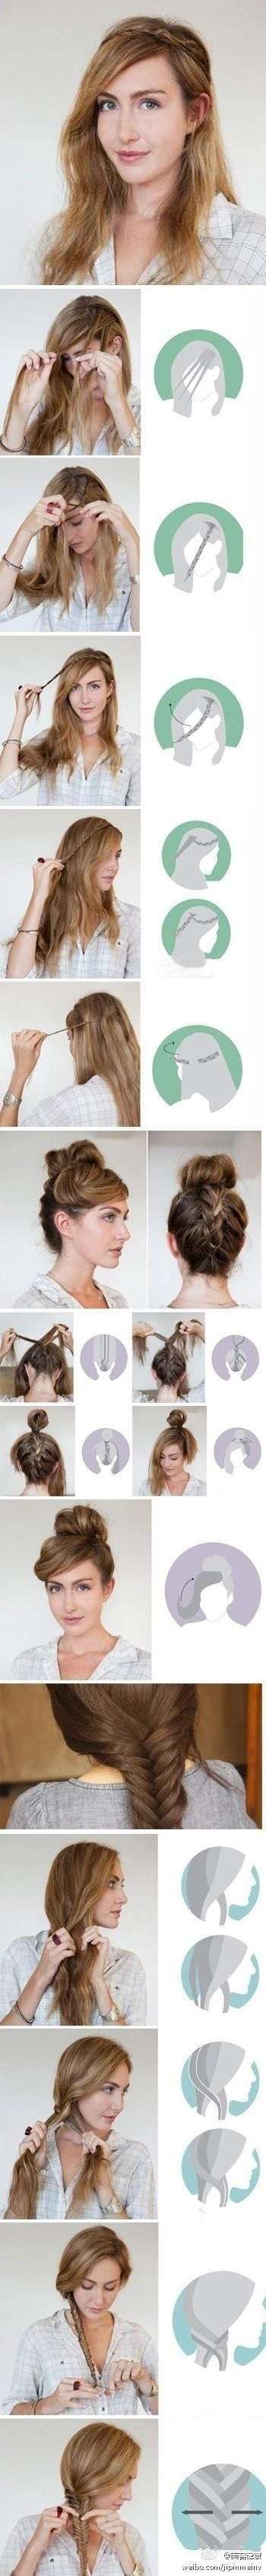 how to hair styles..